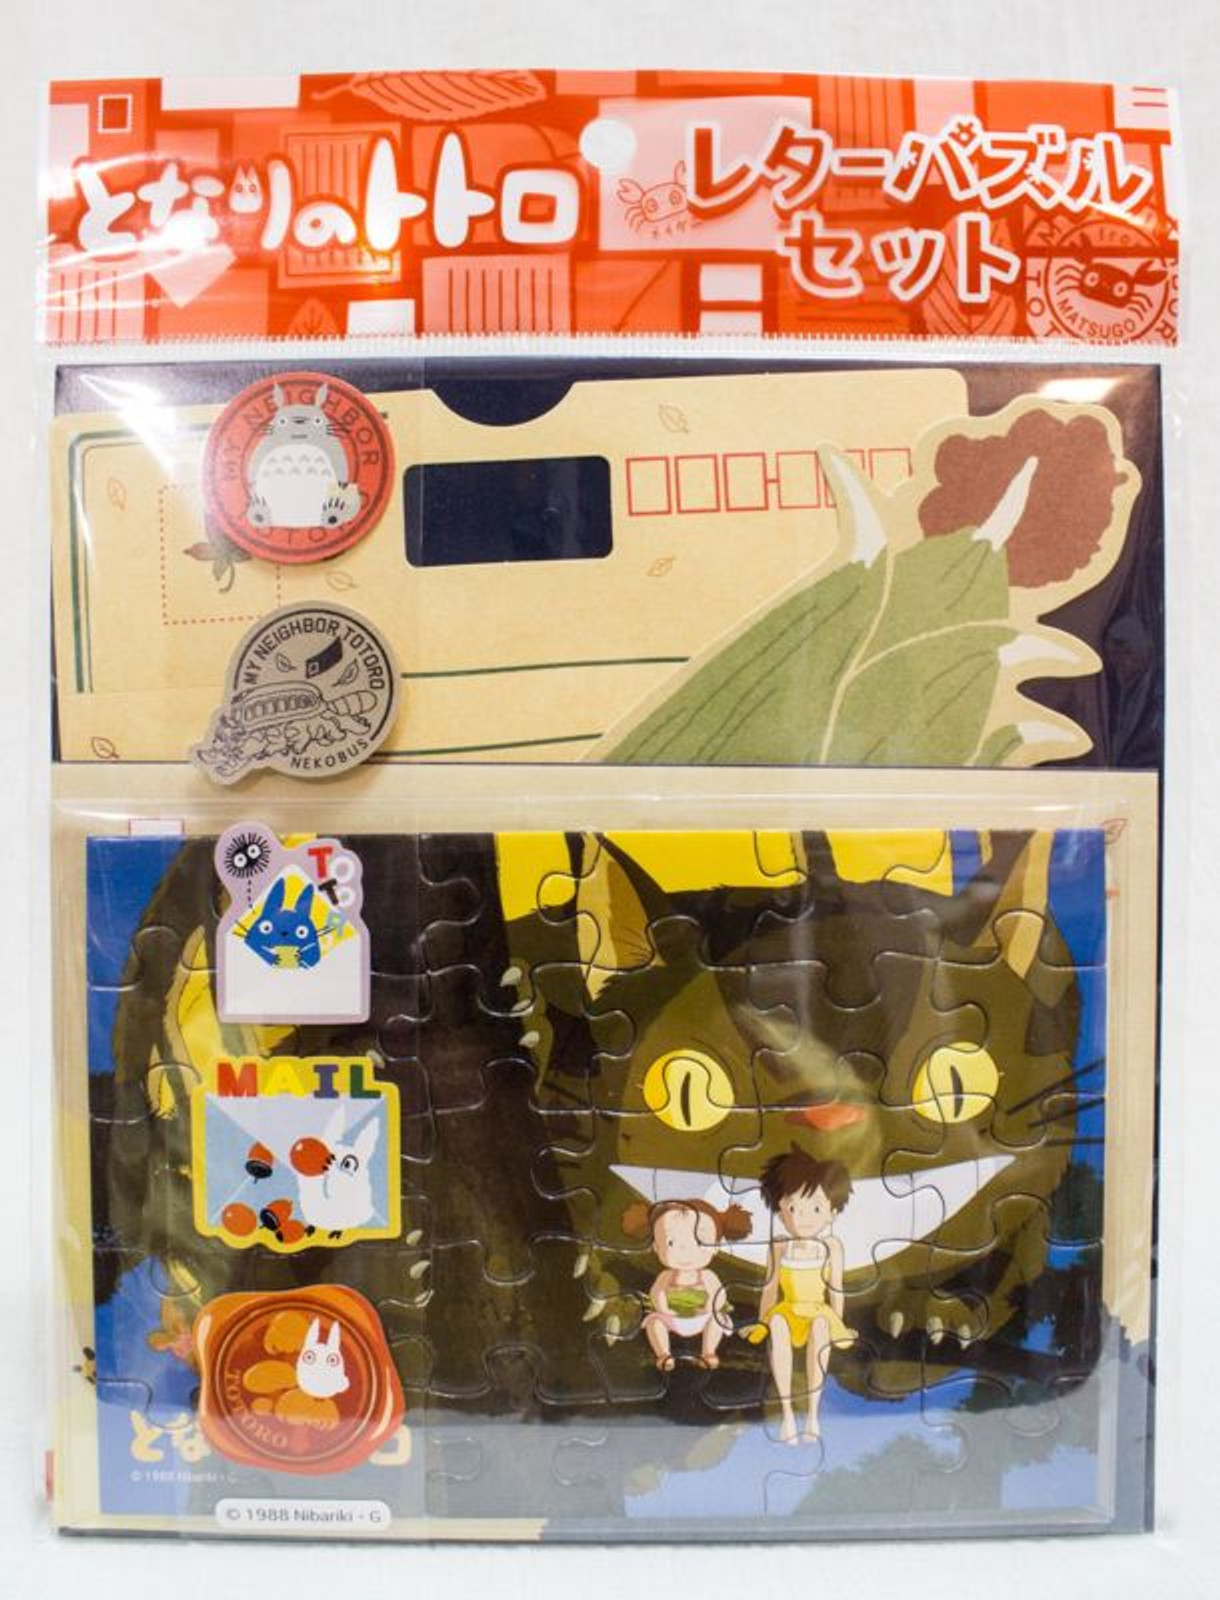 My Neighbor Totoro Letter Puzzle set Studio Ghibli JAPAN ANIME MANGA 3